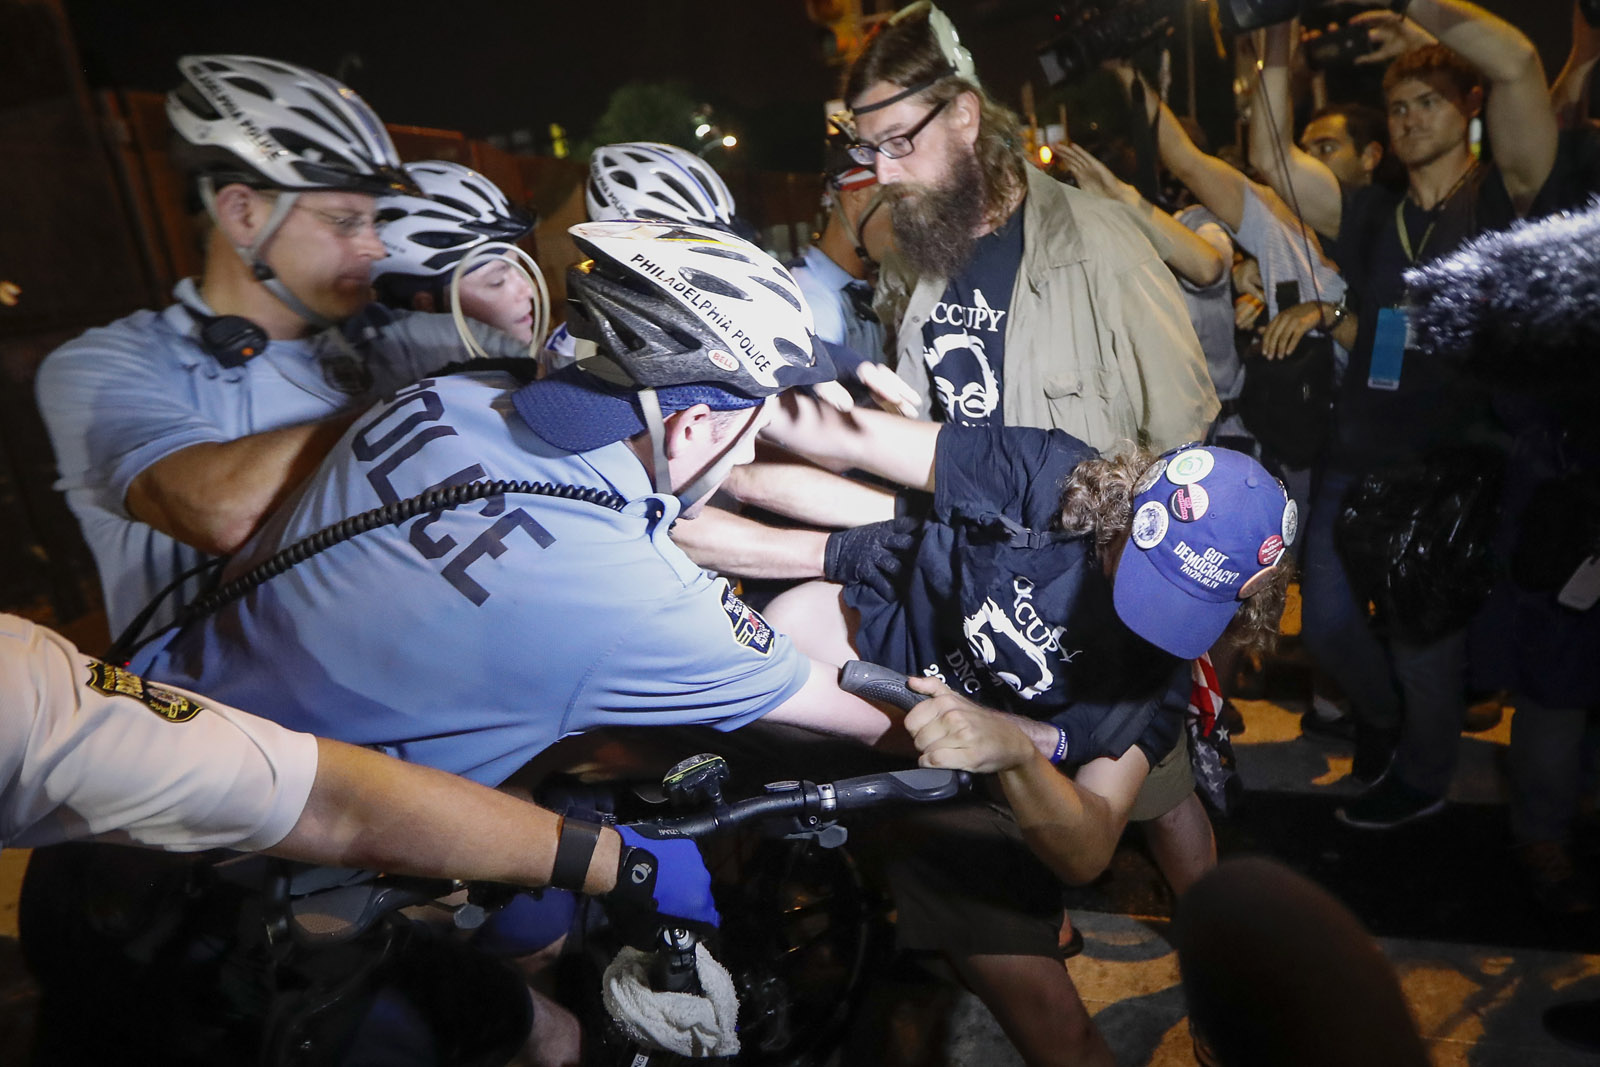 Demonstrators clash with police during a protest at Franklin Delano Roosevelt park in Philadelphia, Thursday, July 28, 2016, during the final day of the Democratic National Convention. (AP Photo/John Minchillo)